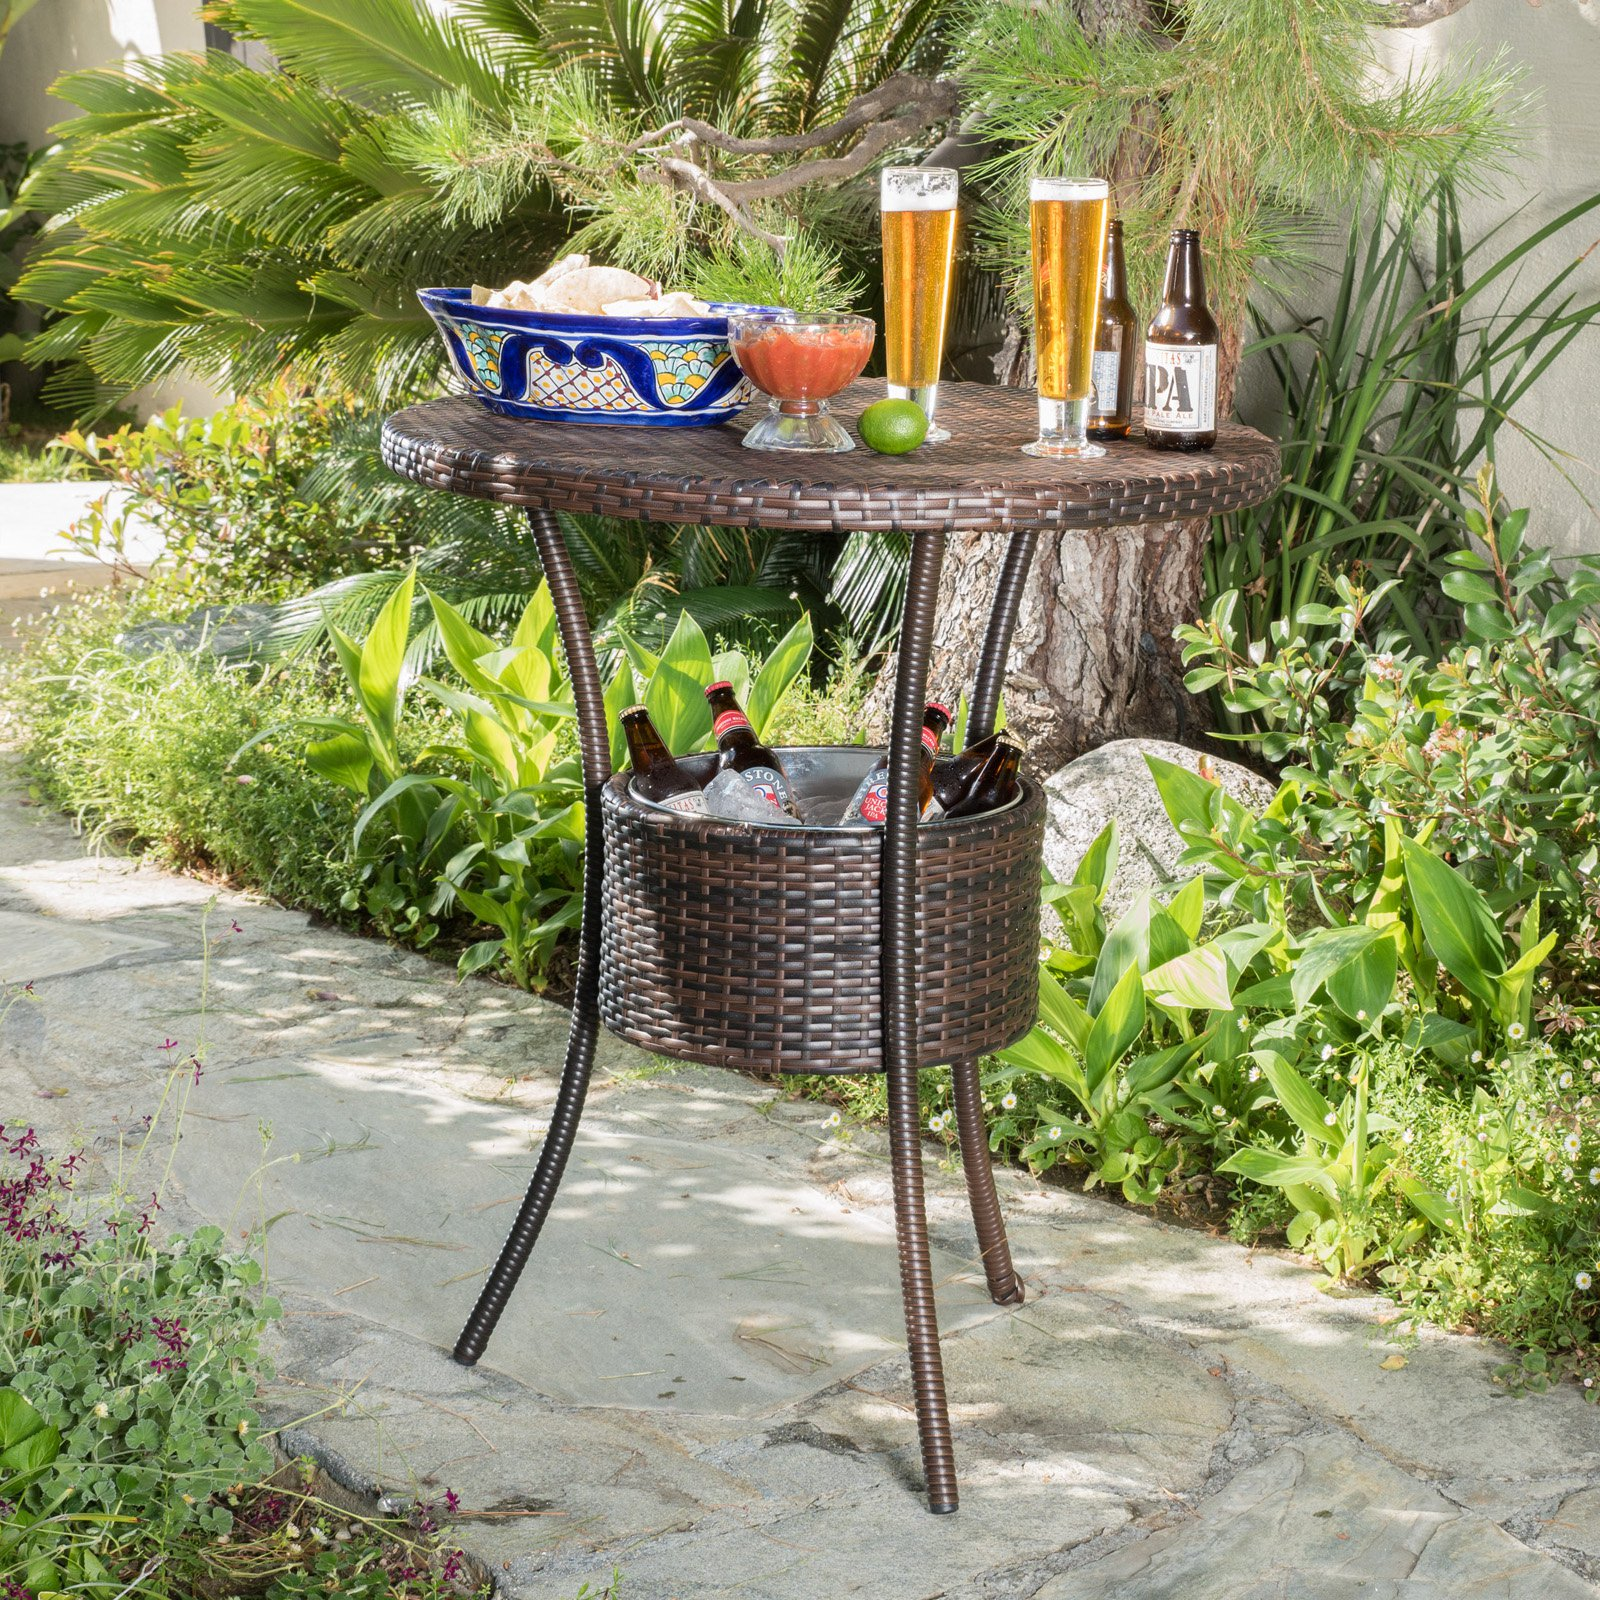 Best Selling Home Hondura Patio Table with Ice Pail